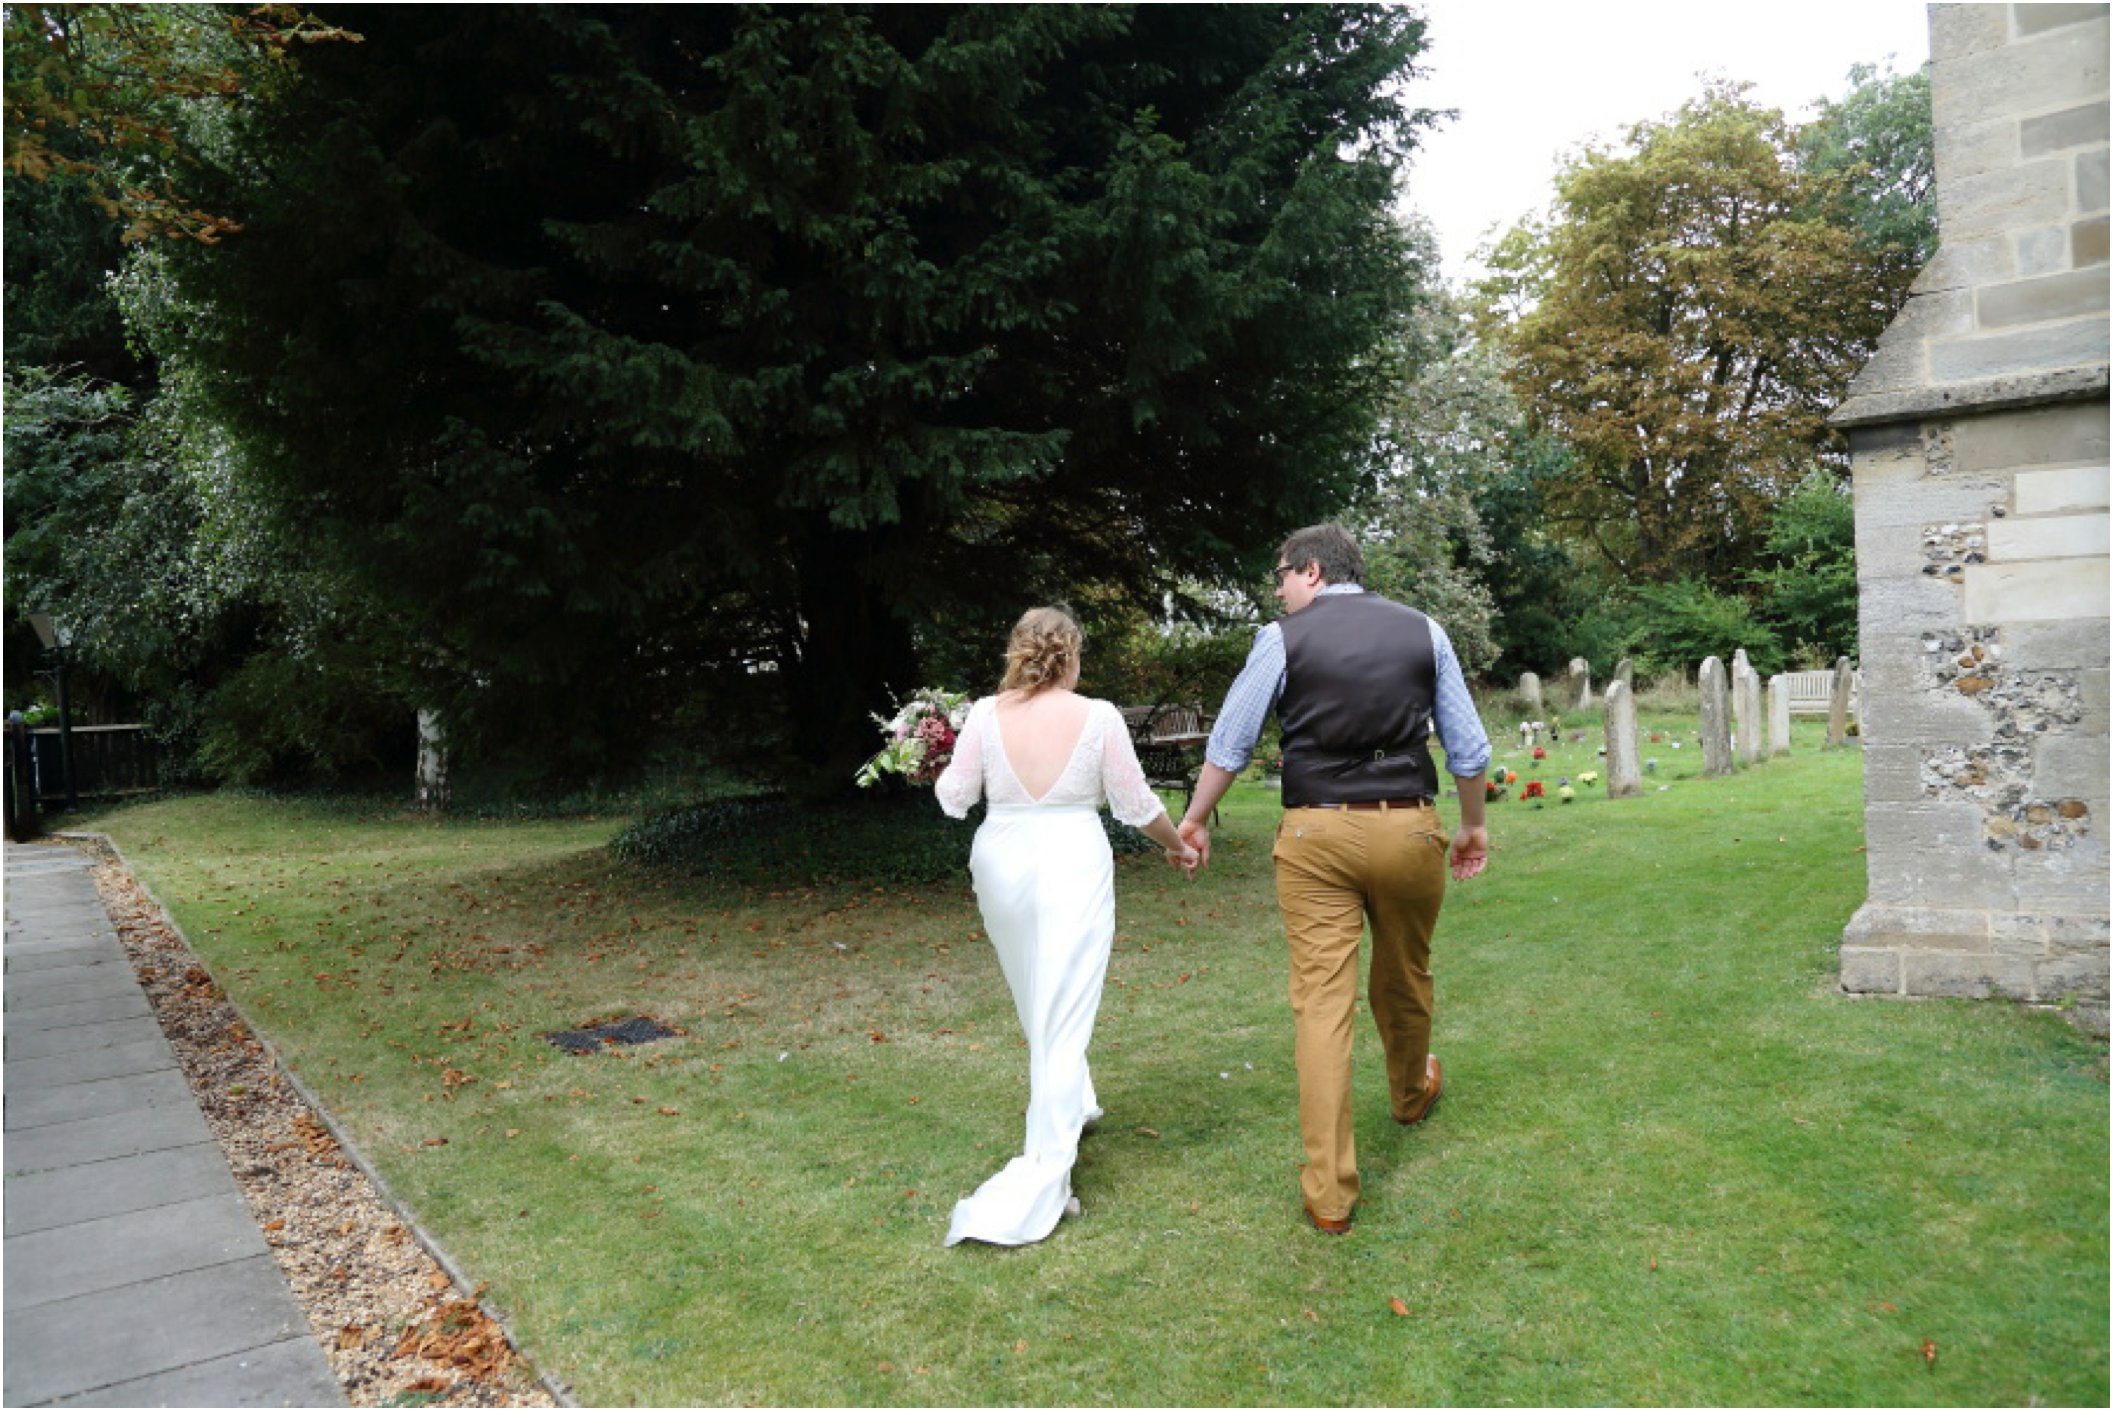 Relaxed couples portraits at Cambridge wedding, Stapleford church